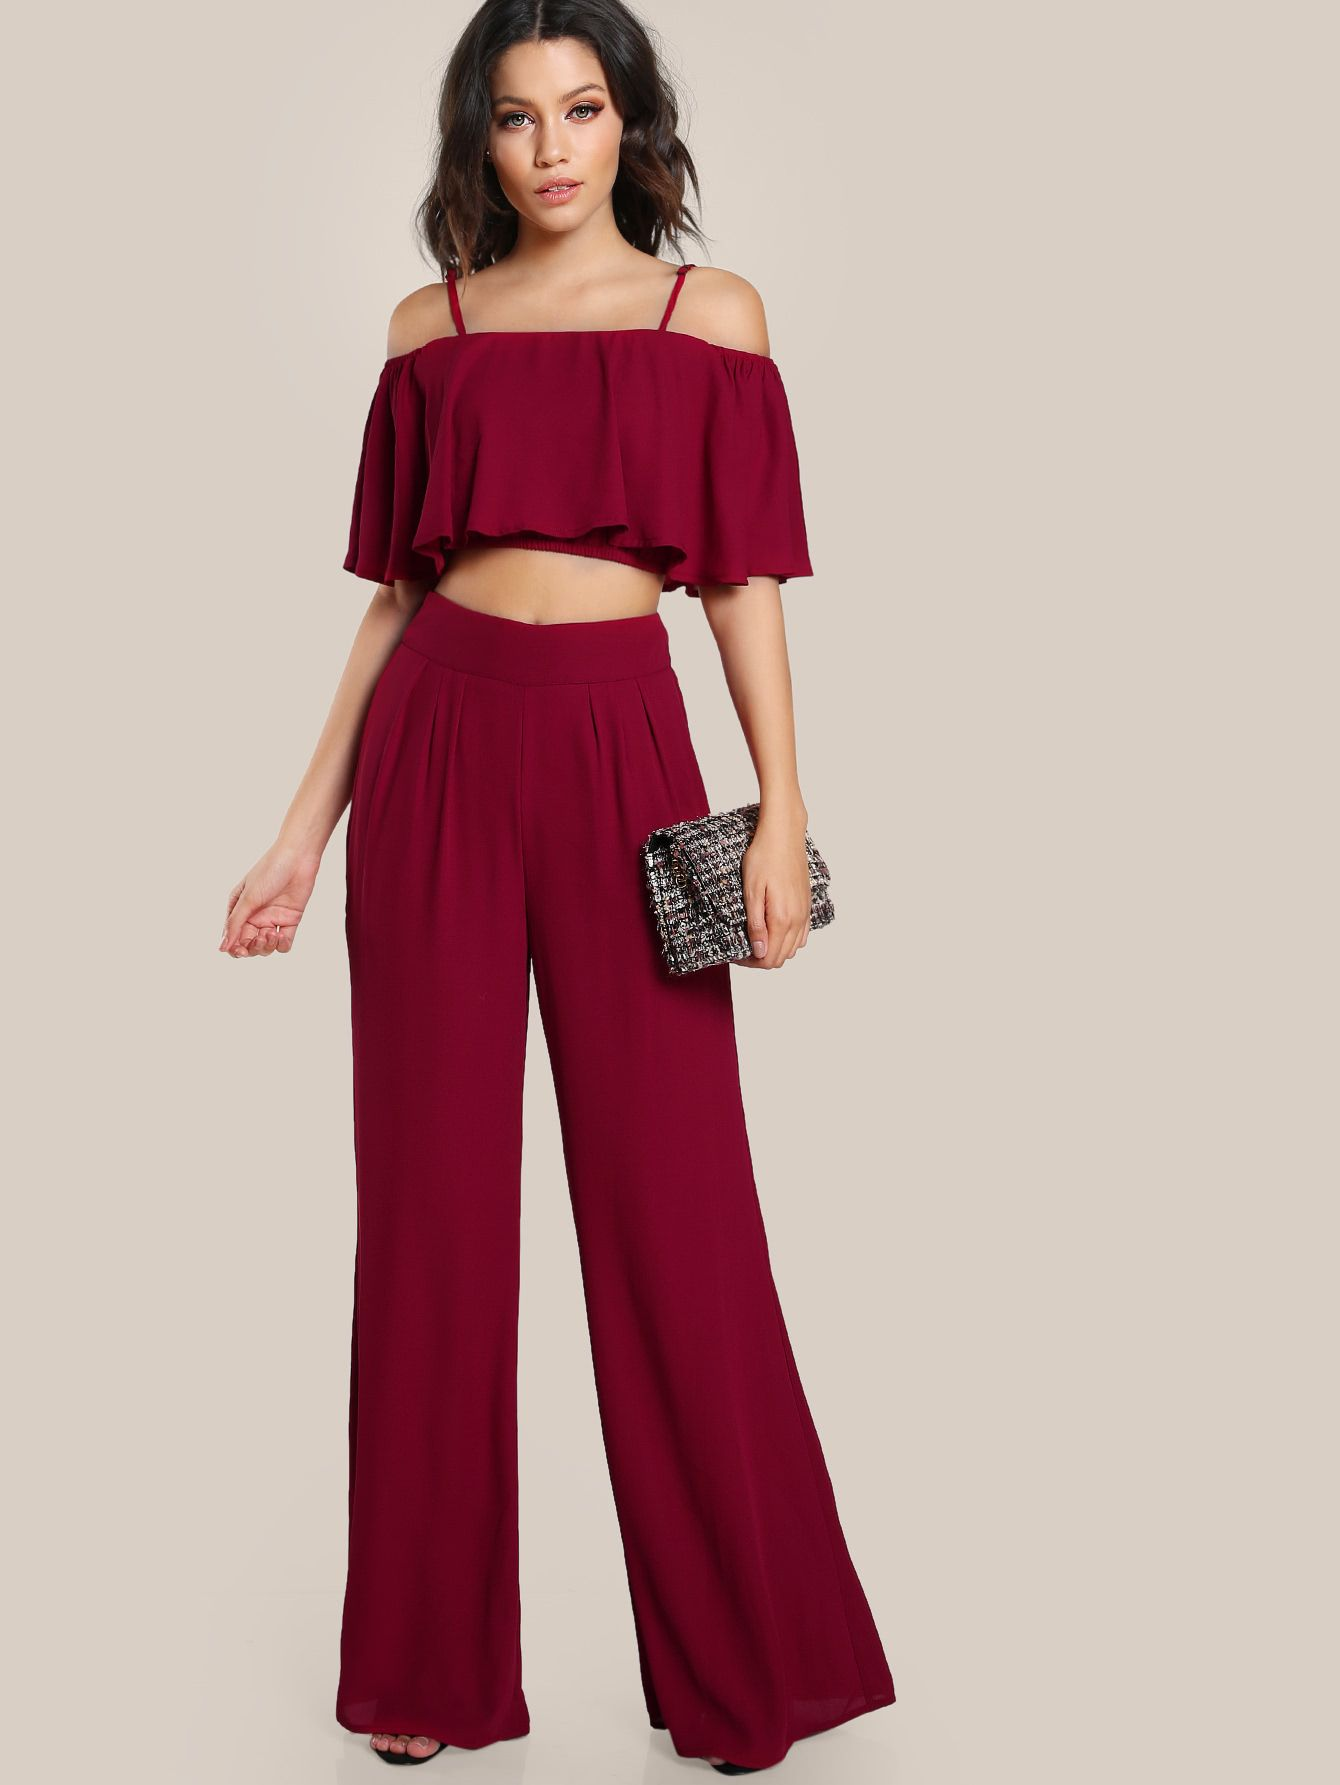 7e9a71aff8 Shop Crop Flounce Top And Box Pleated Palazzo Pants Set online. SheIn  offers Crop Flounce Top And Box Pleated Palazzo Pants Set & more to fit  your ...